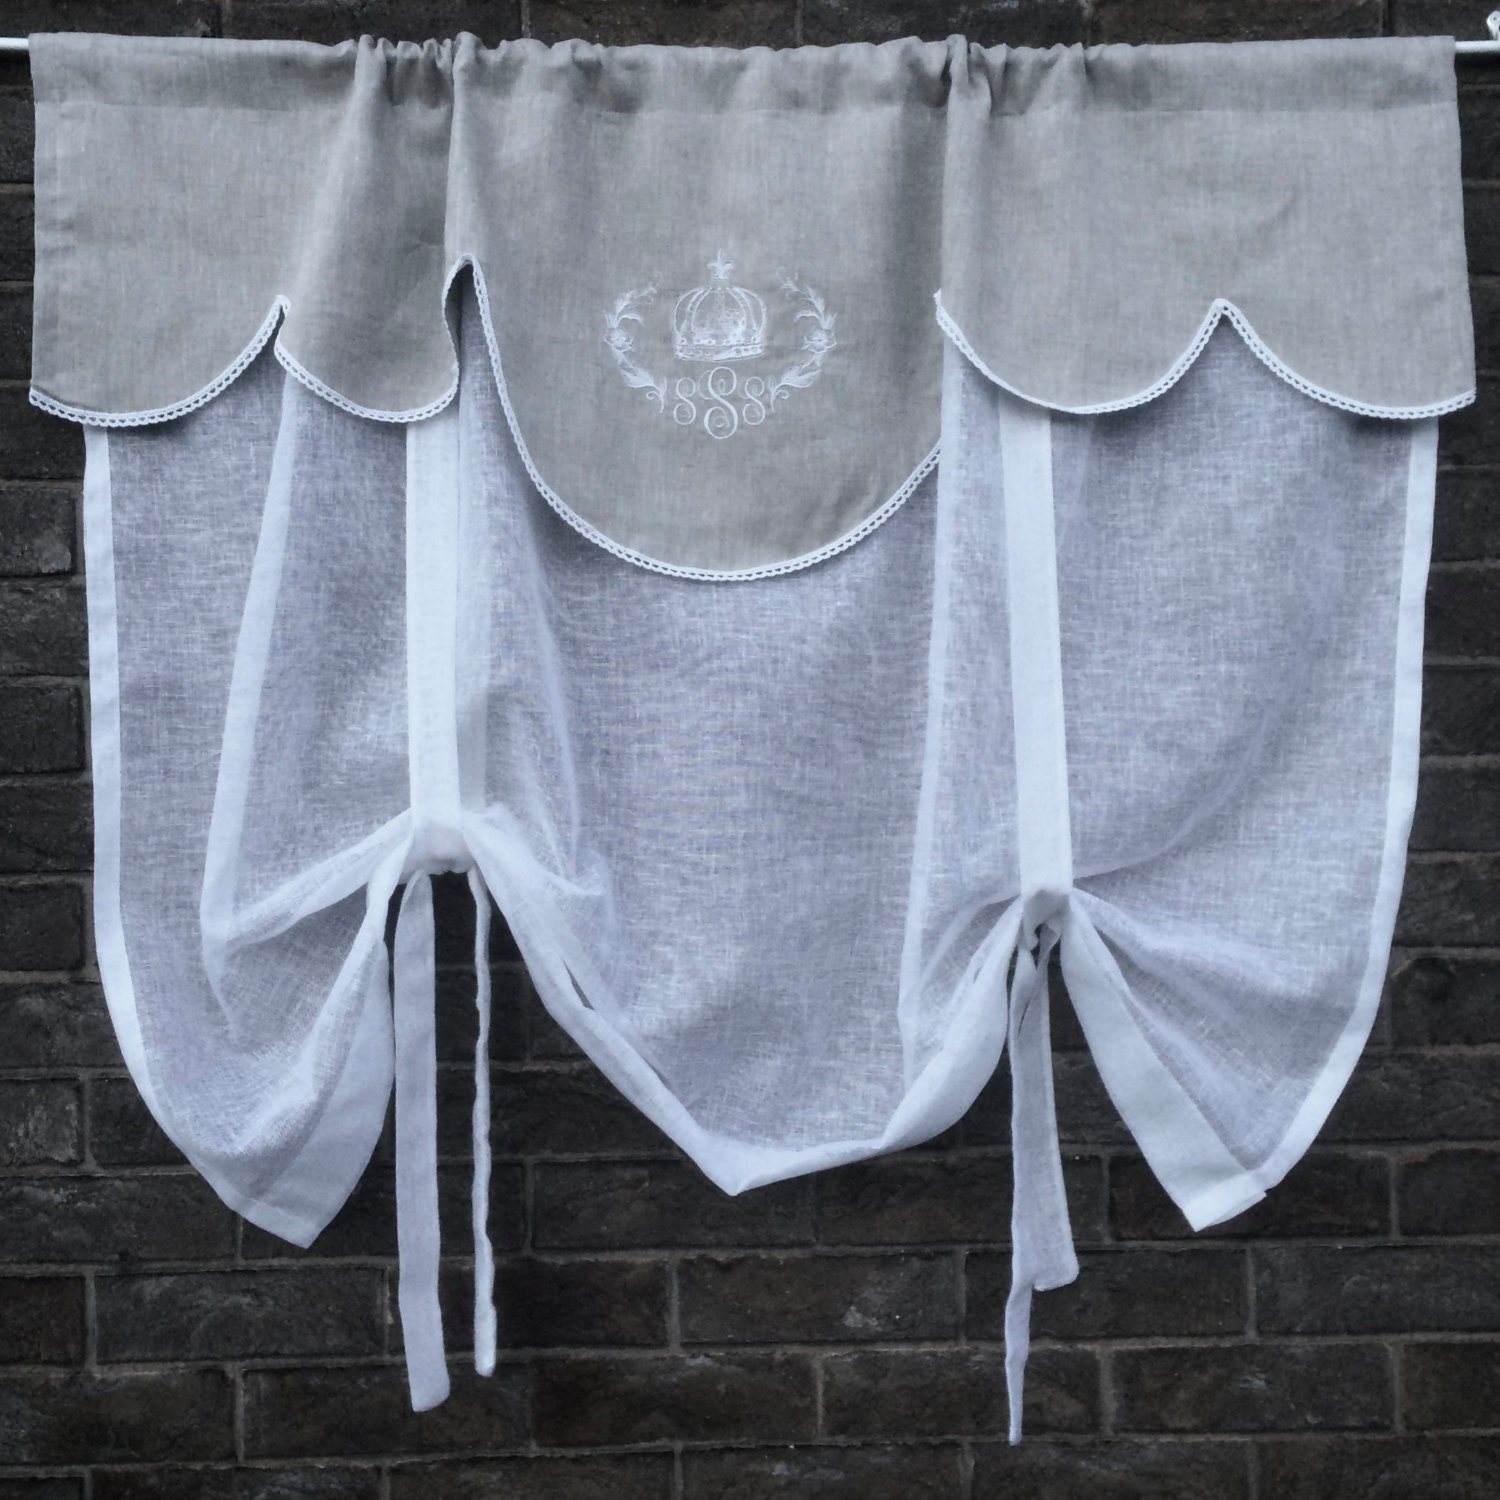 Tie Up Kitchen Curtains: Linen Tie Up Curtain With Crown Monogram Natural Grey